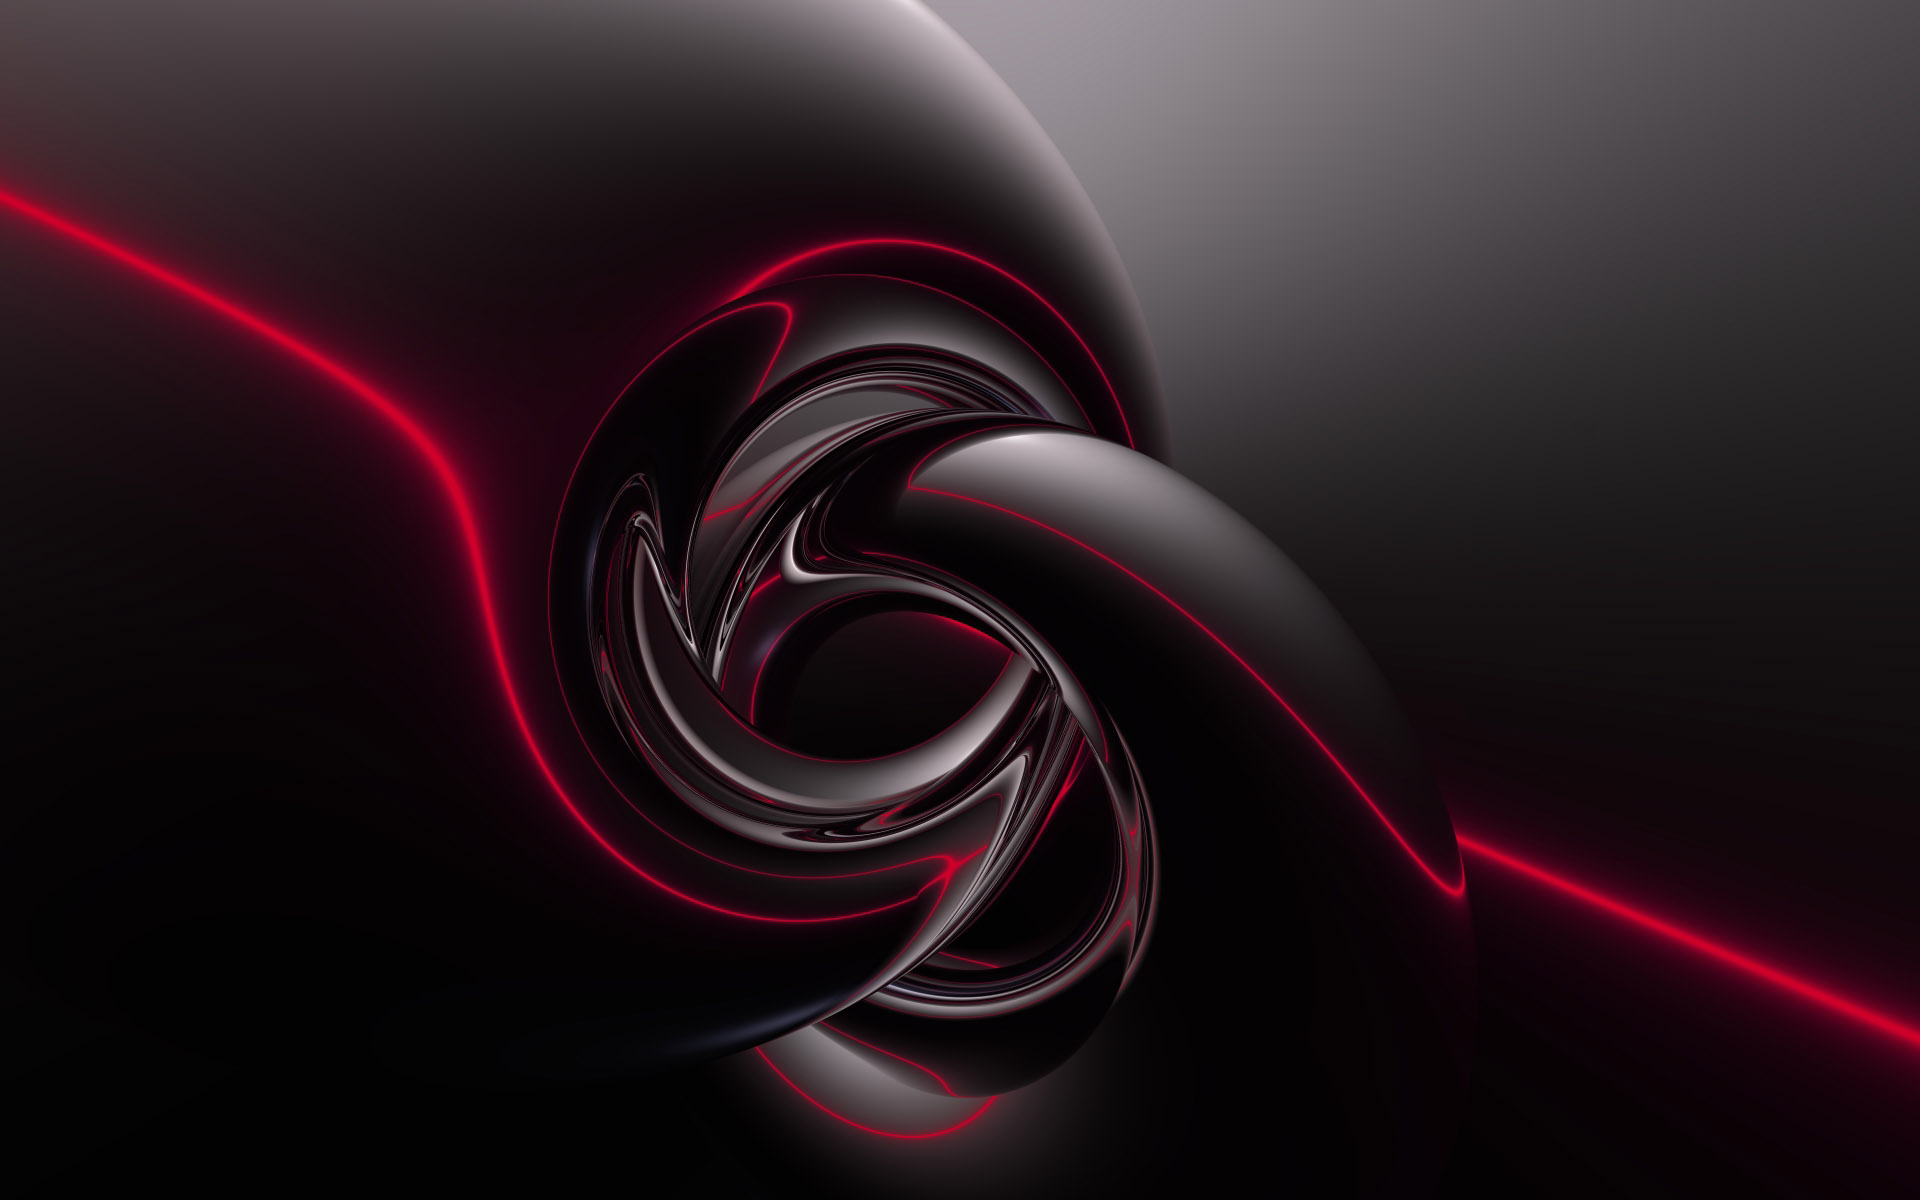 Dark Red and Black Abstract HD Wallpaper | Background ...